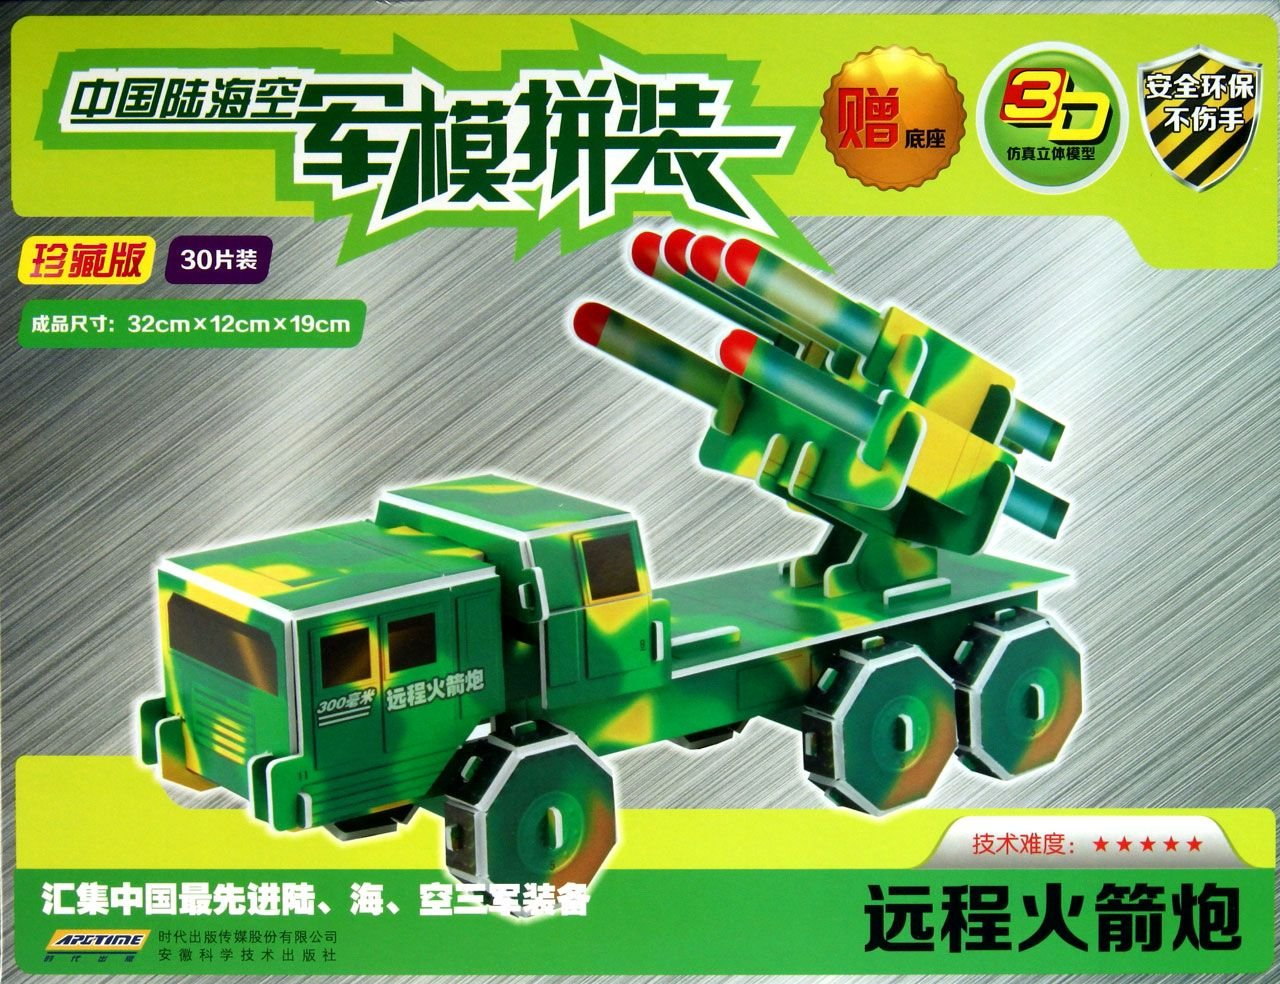 Download Range Rockets(Collectors Edition: 30 Pieces) (Chinese Edition) pdf epub